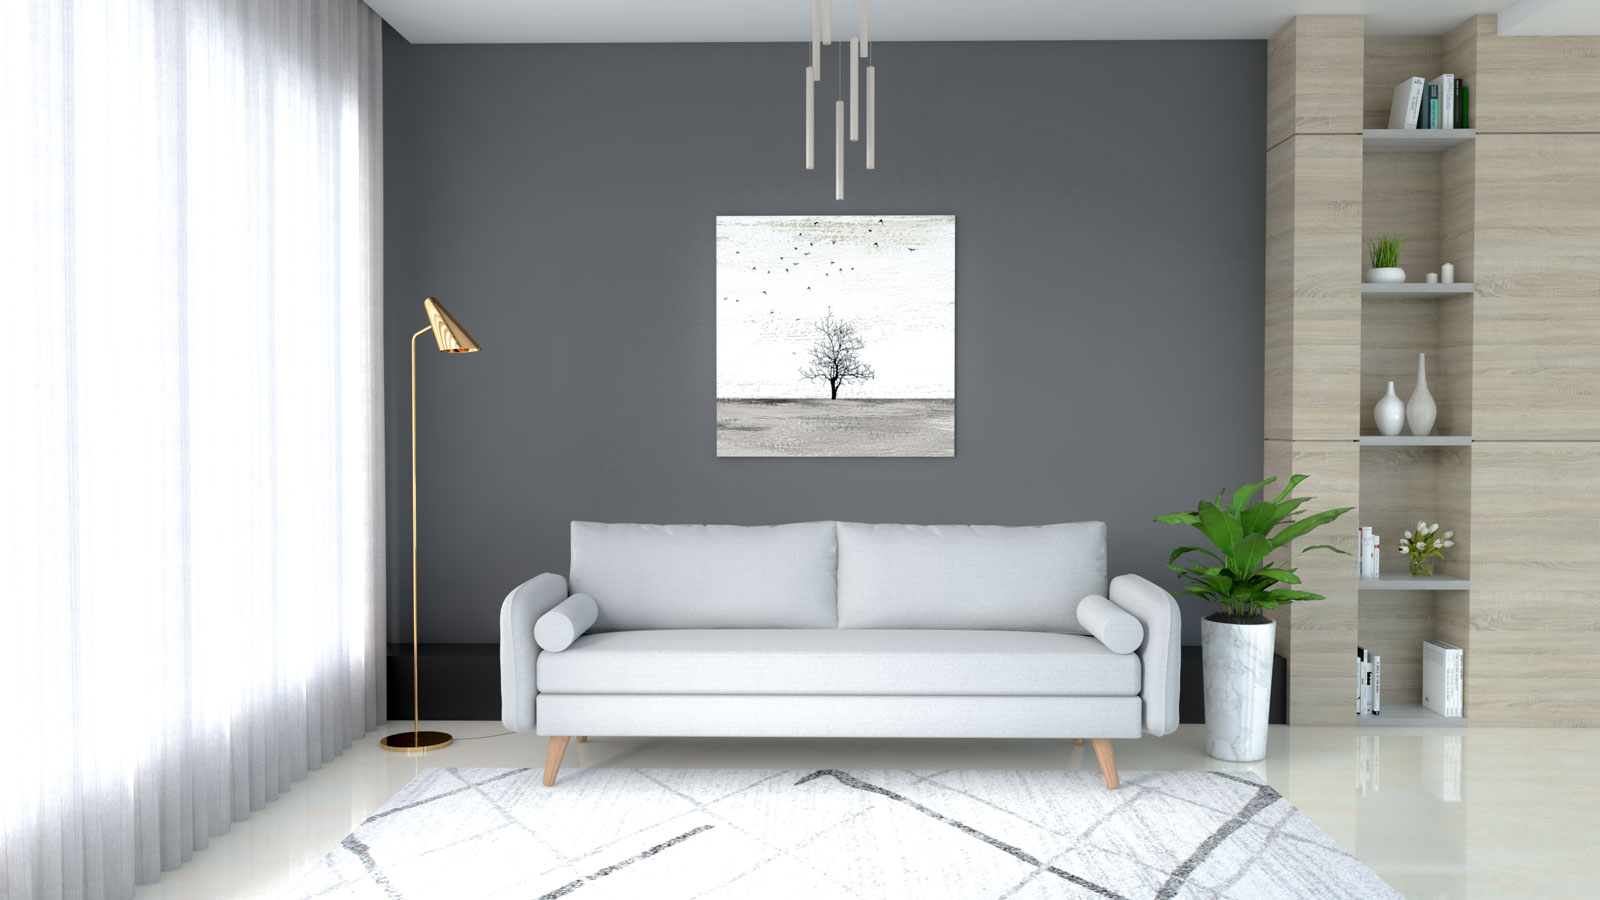 Light gray couch with dark gray wall